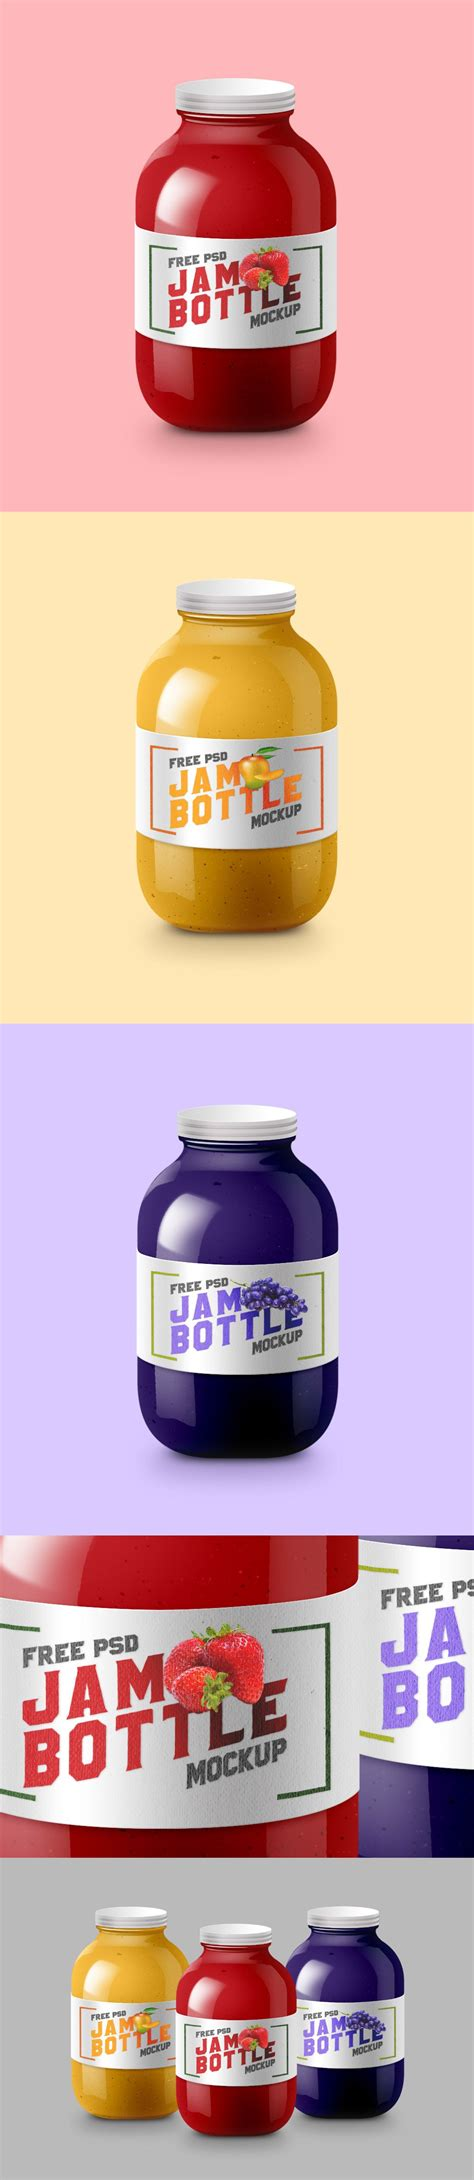 33cm x 19cm (in 300 dpi) all download from free file storage. Free Glossy Jam Bottle Mockup PSD - CreativeBooster